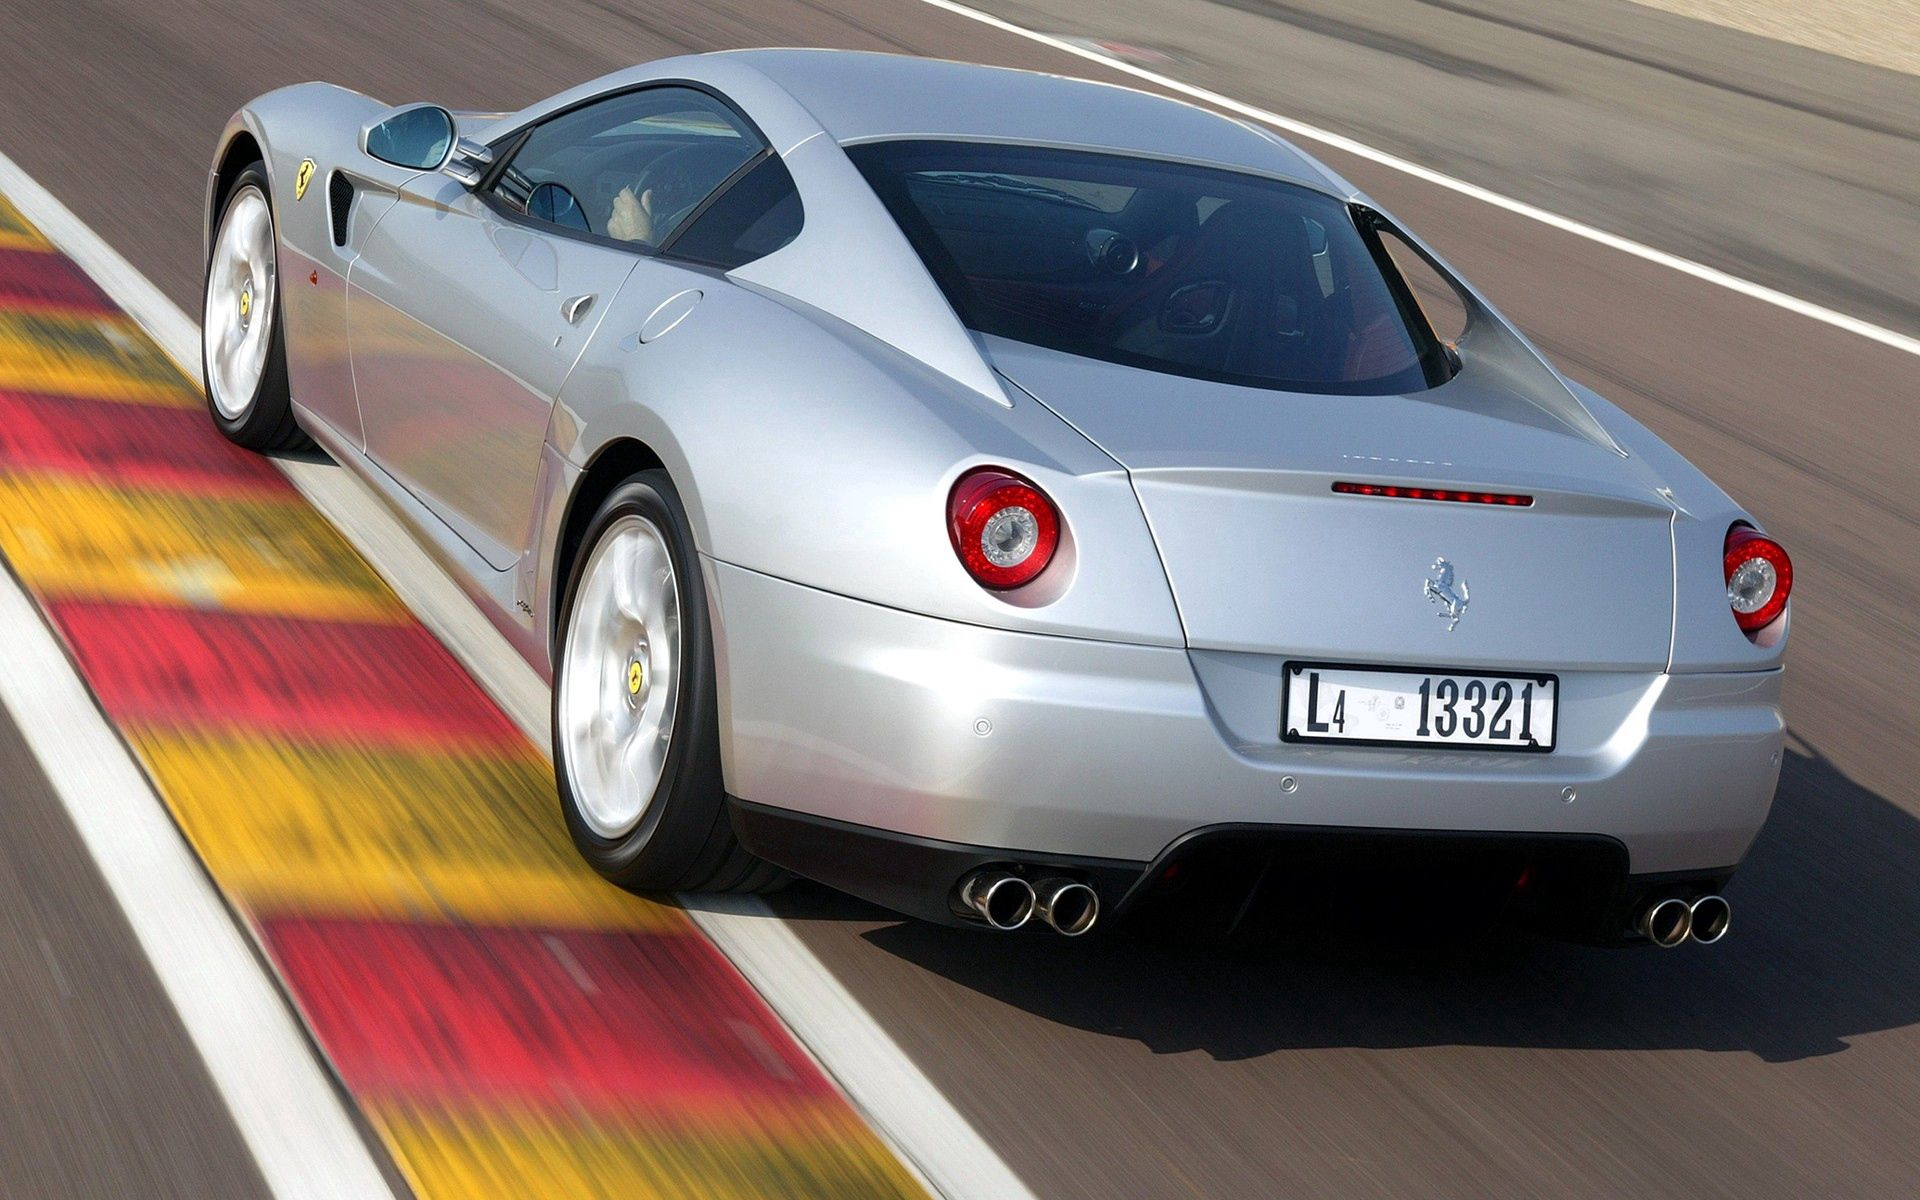 79560 download wallpaper Cars, Ferrari, Grey, Back View, Rear View, Style screensavers and pictures for free